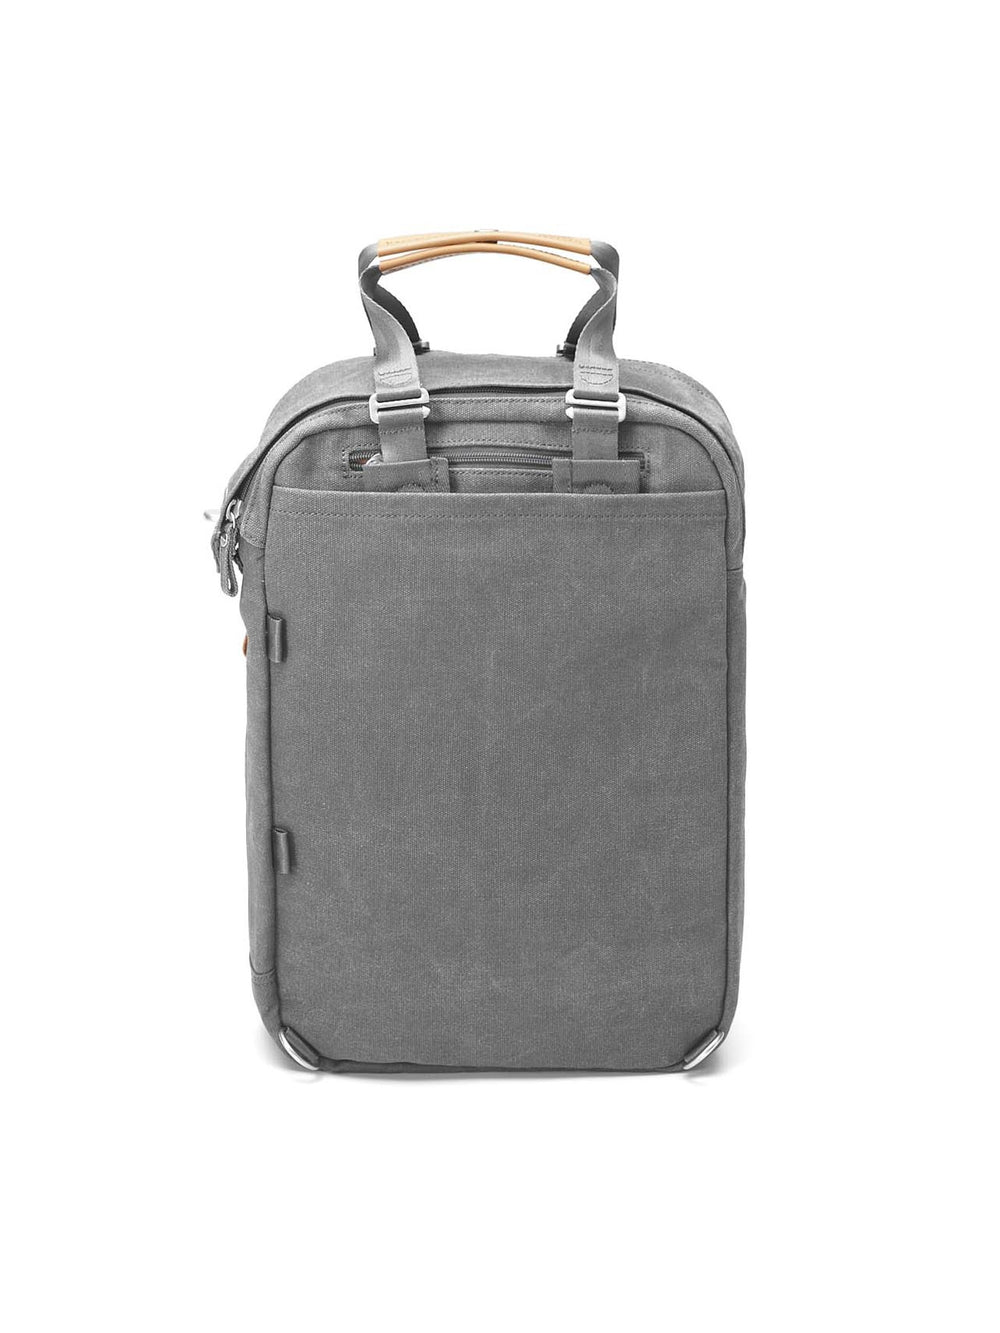 Qwstion Daypack in washed Grey features foldable shoulder straps